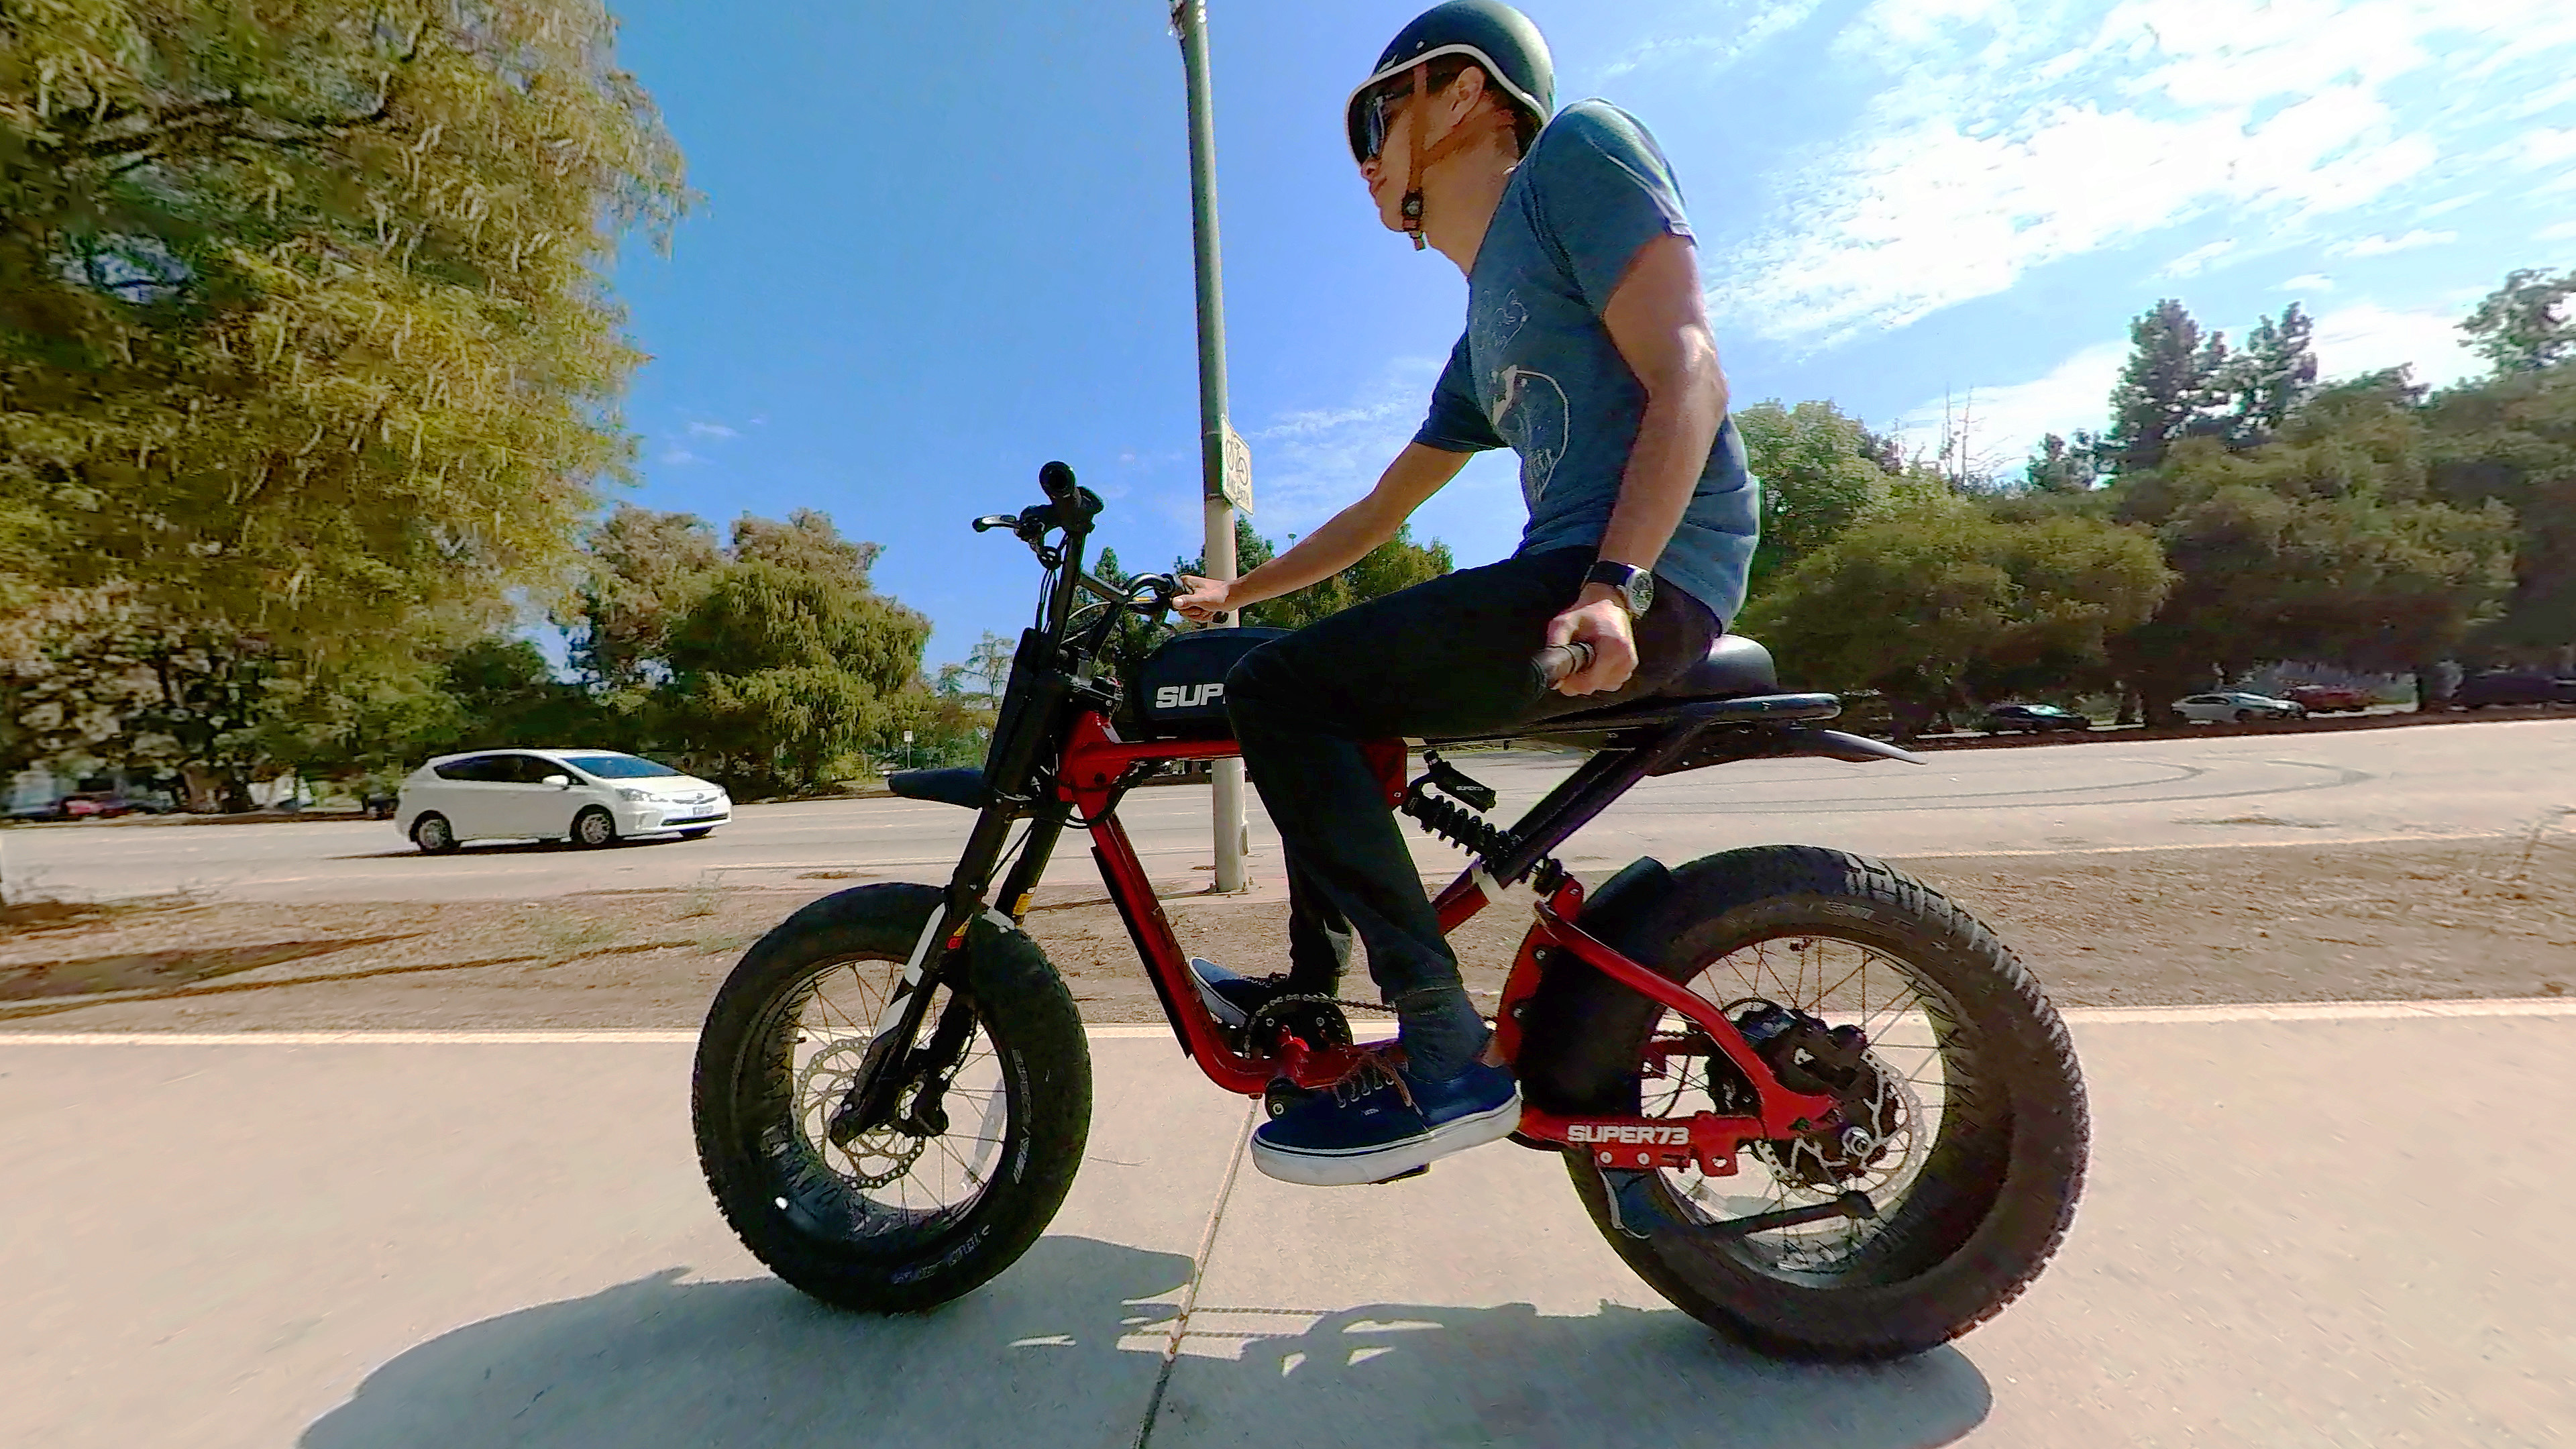 Video: Super73 RX hands-on: High performance electric motorbike